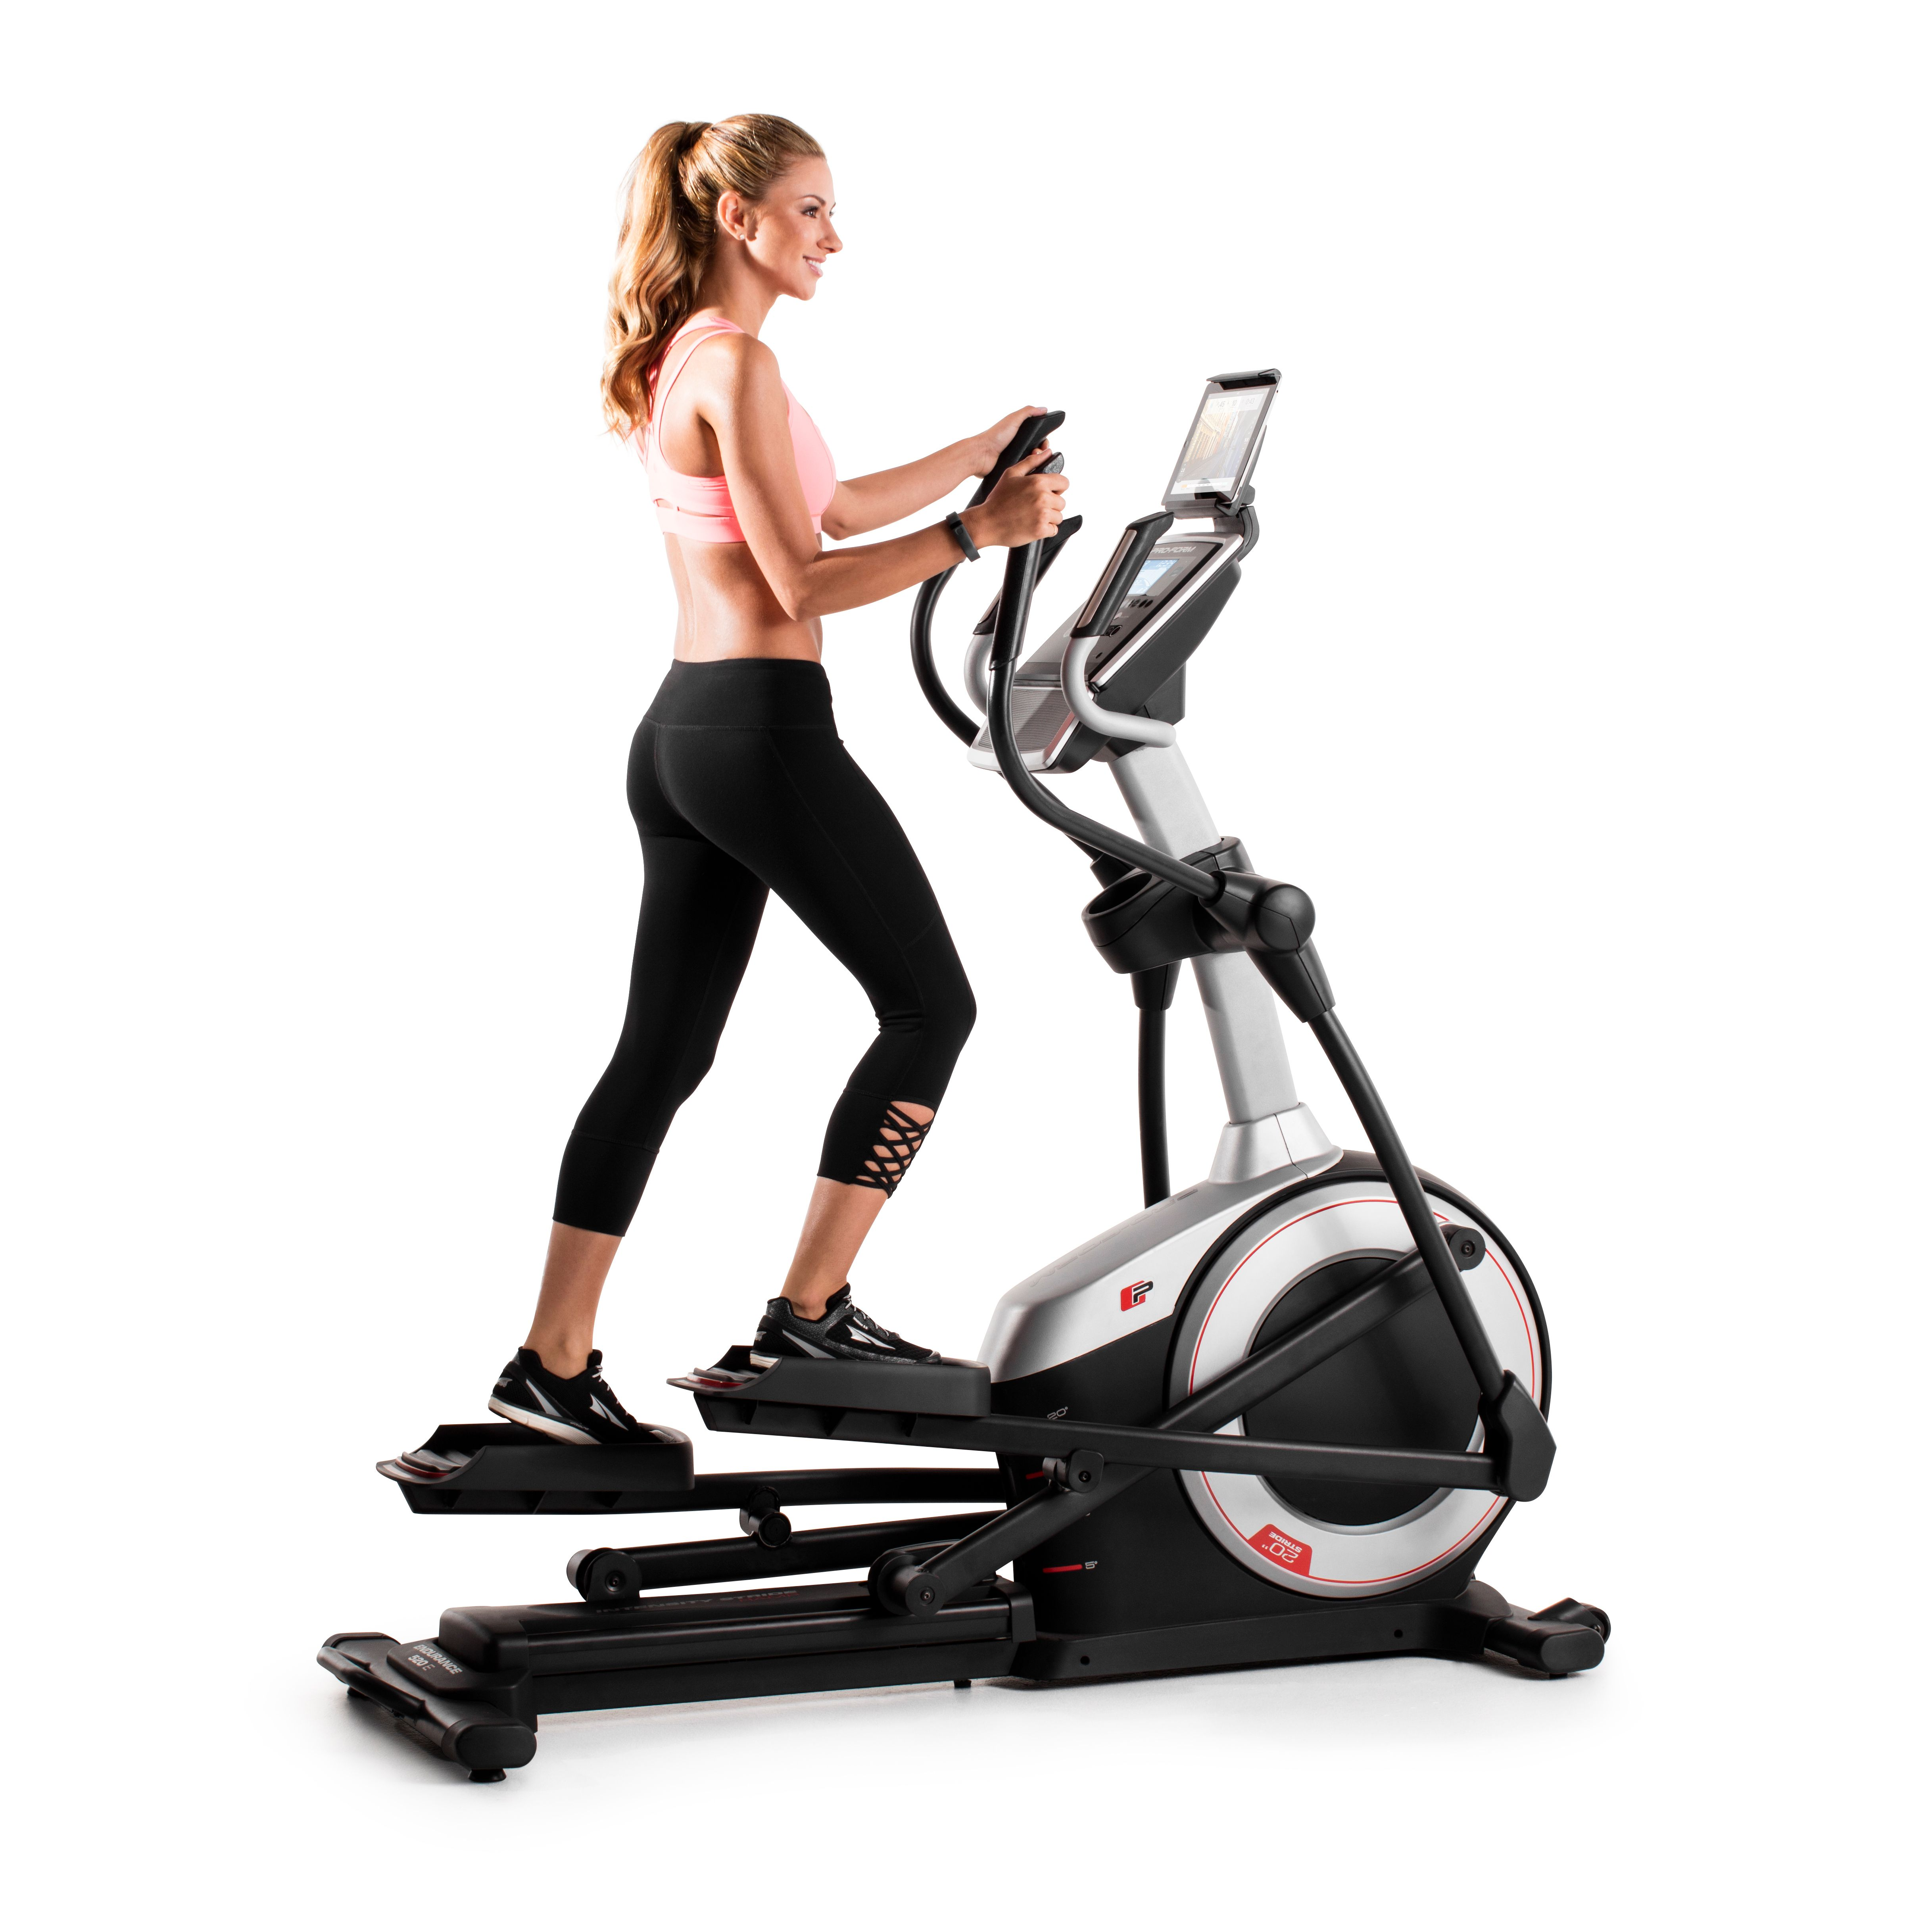 black free product mats sf long fitness mat toys today shipping overstock sunny health sports stride elliptical magnetic